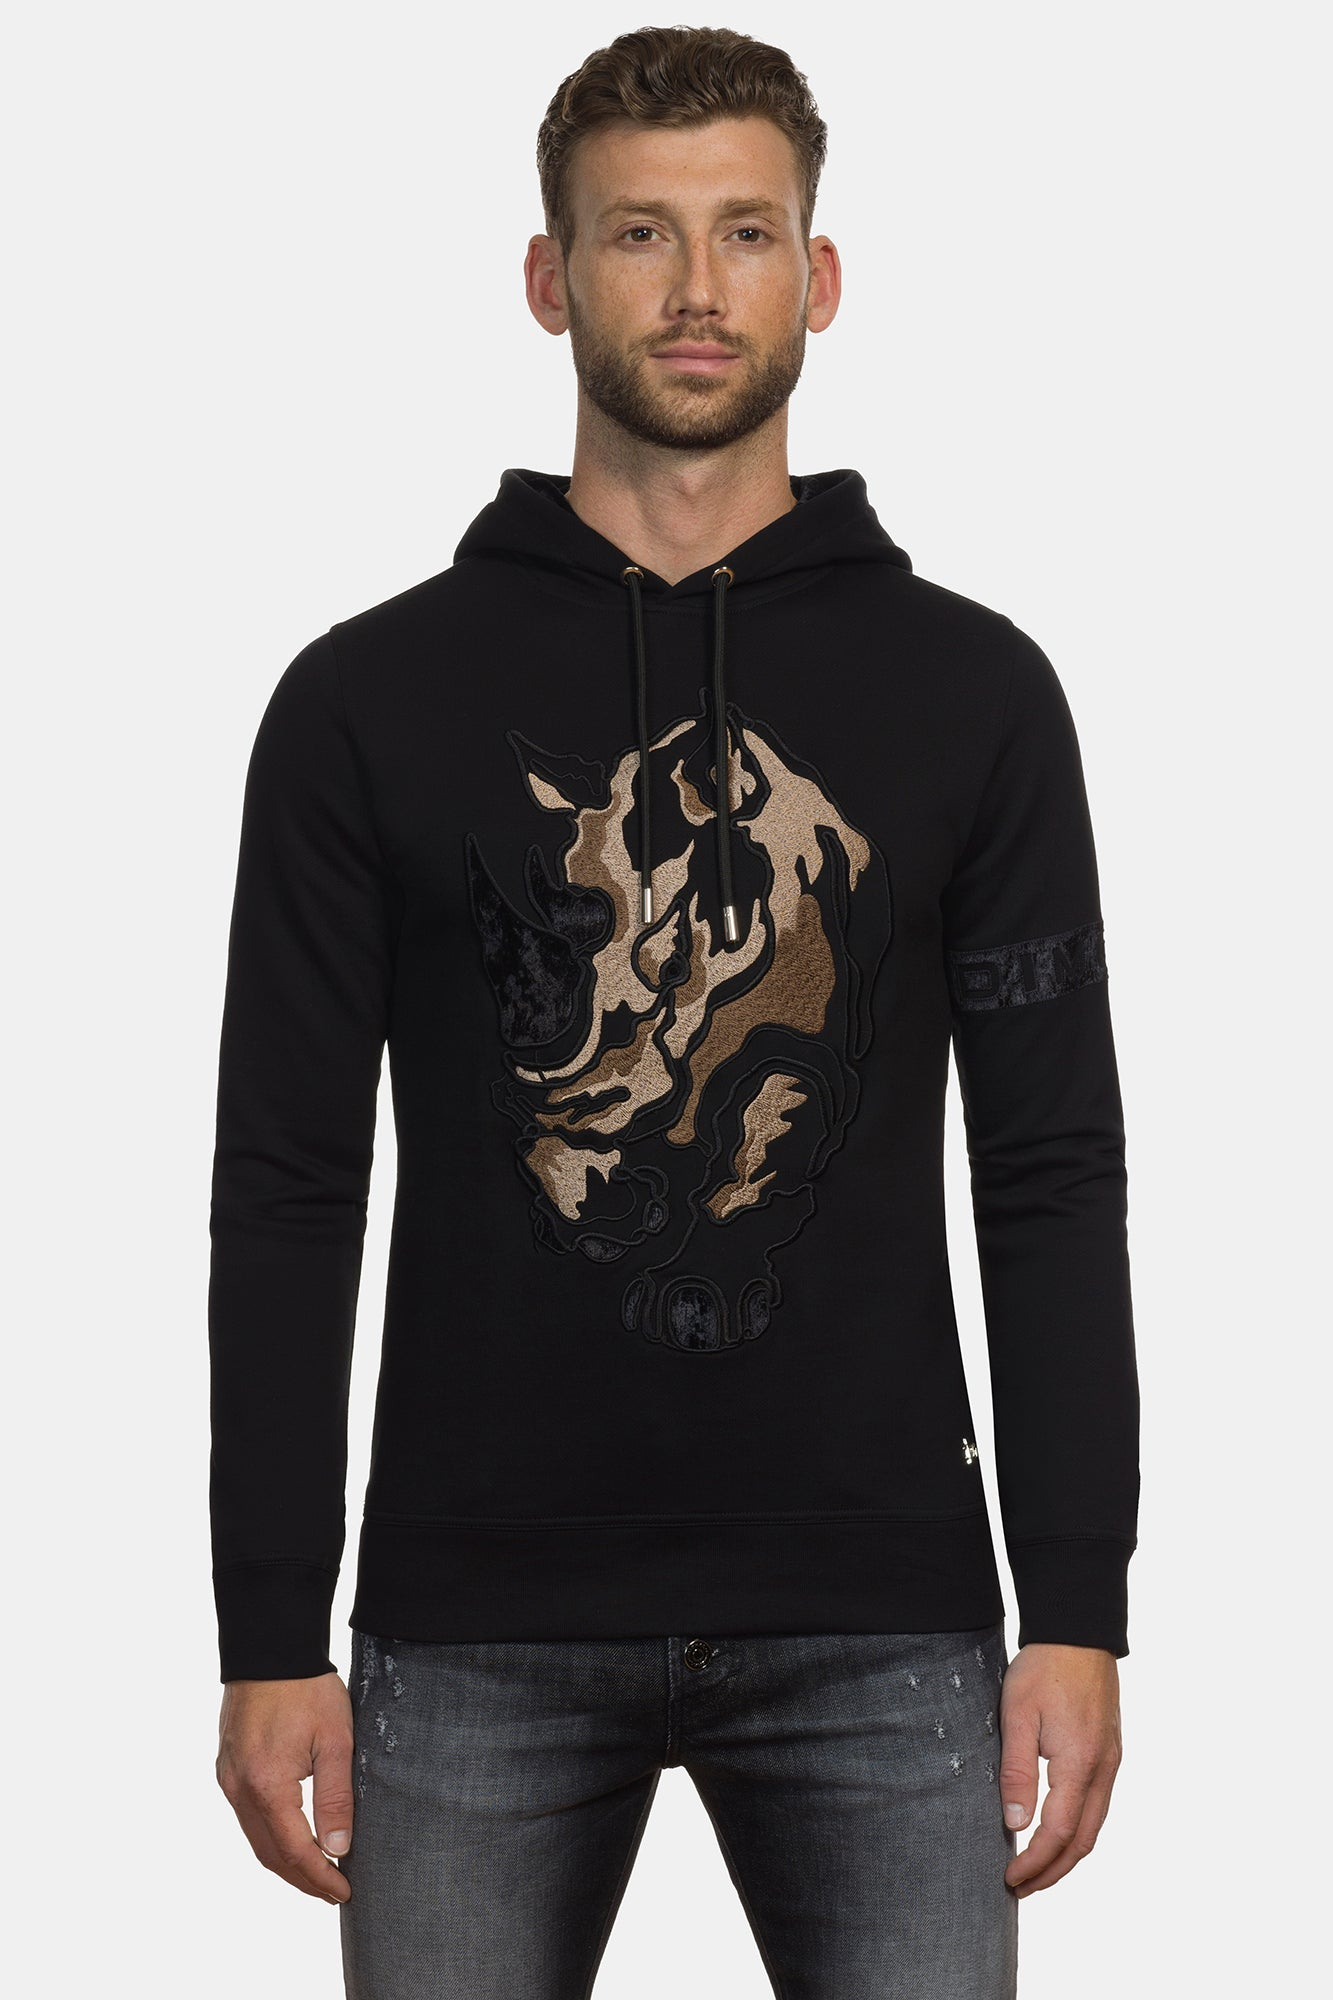 Black Rhinoceros Hoodie Sweater - DIMORAL OFFICIAL